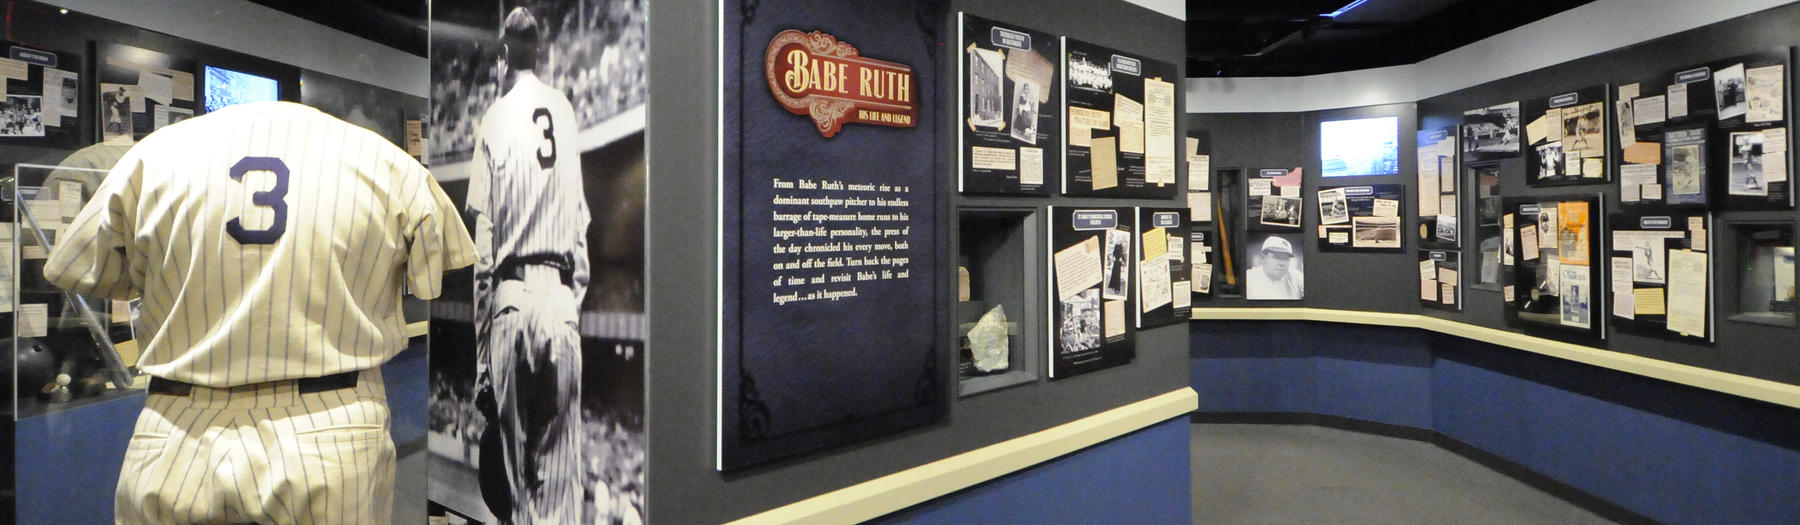 A partial view of the updated Babe Ruth exhibit, 2014. (Milo Stewart, Jr. / National Baseball Hall of Fame)